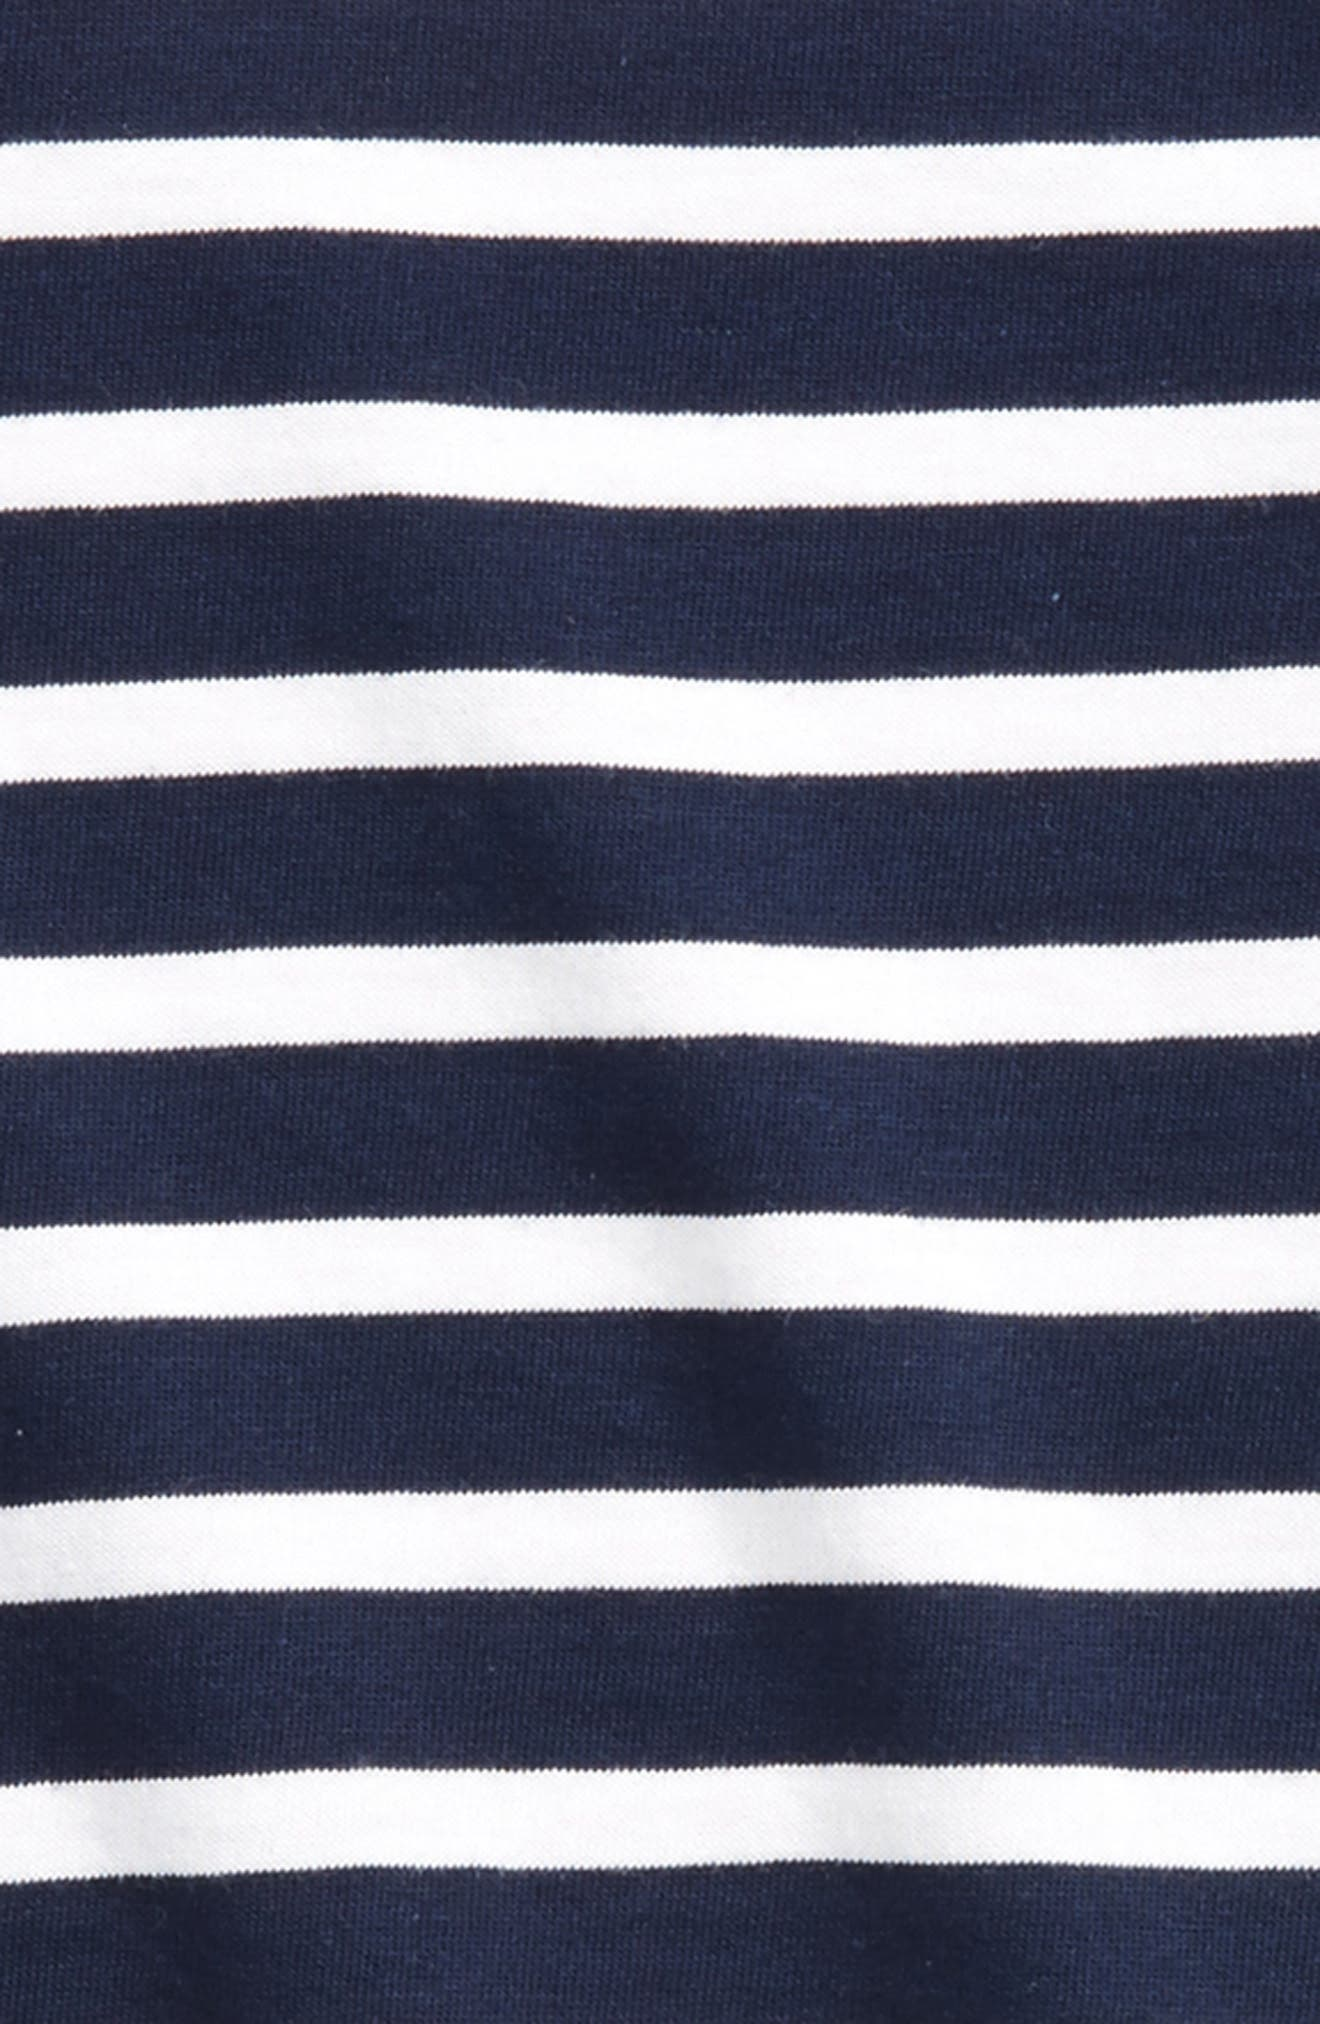 Alternate Image 2  - Saint James Minquiers Striped Sailor Shirt (Toddlers, Little Kids & Big Kids)